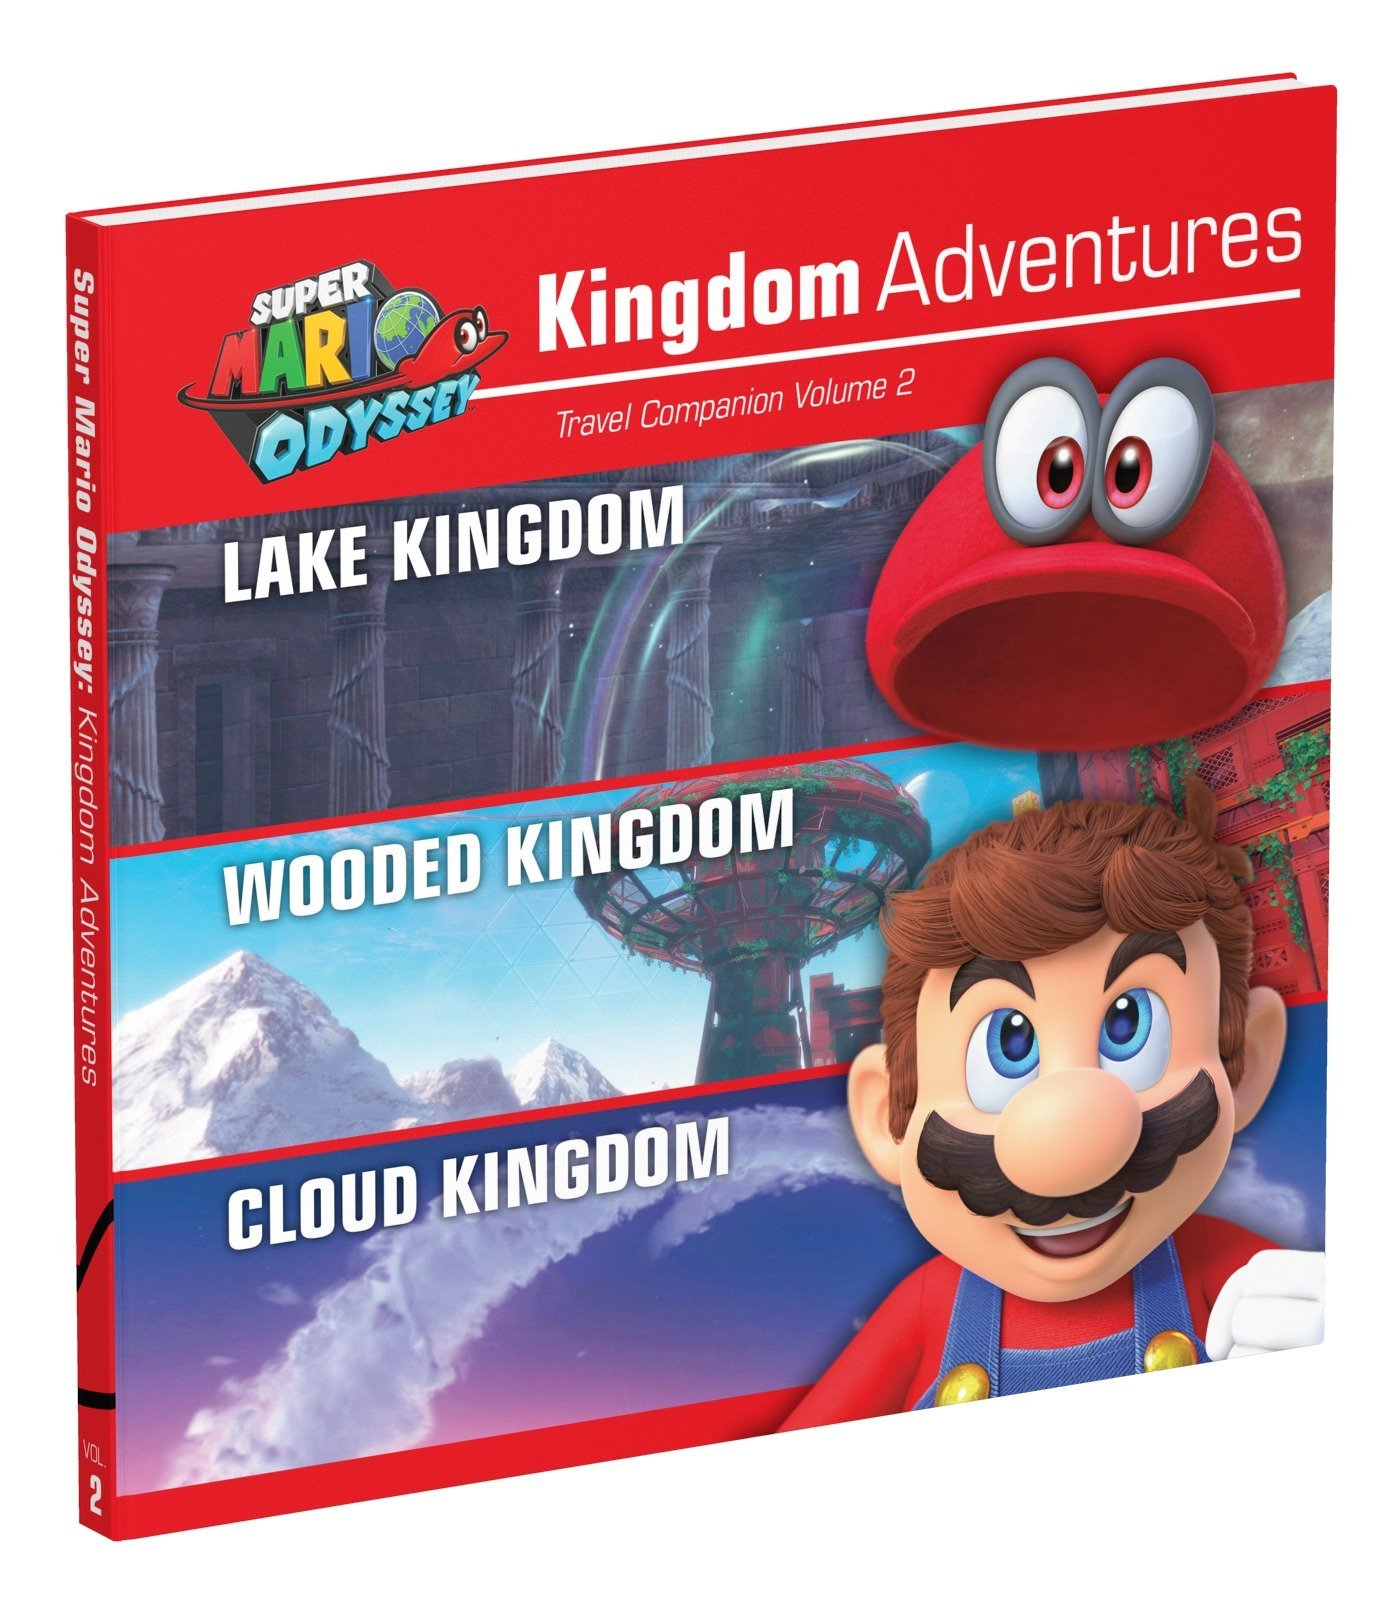 Super Mario Odyssey Kingdom Adventures Vol 2 Amazon Co